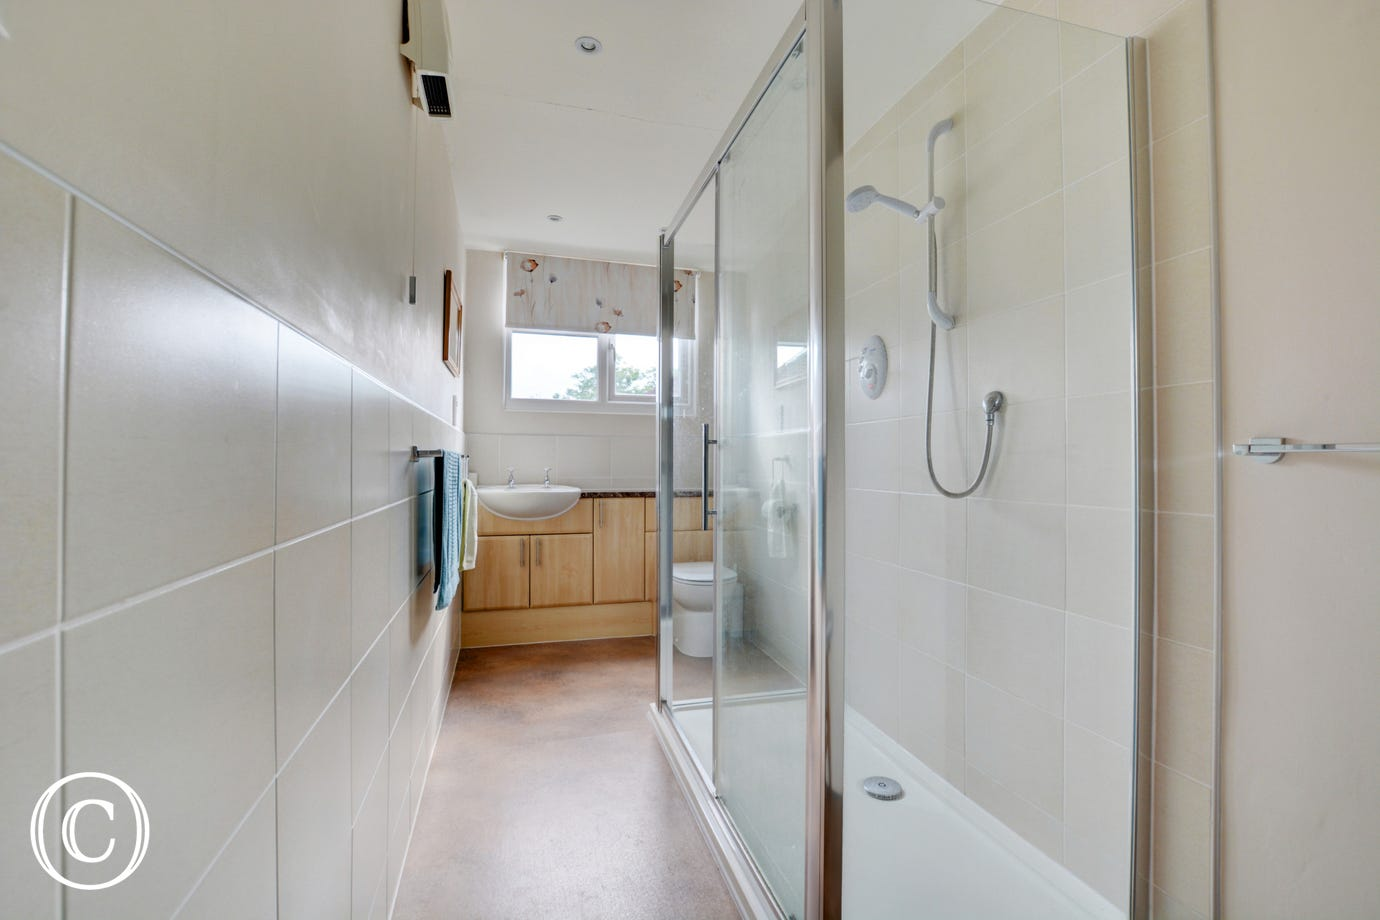 The shower room has been newly renovated with a large walk in shower